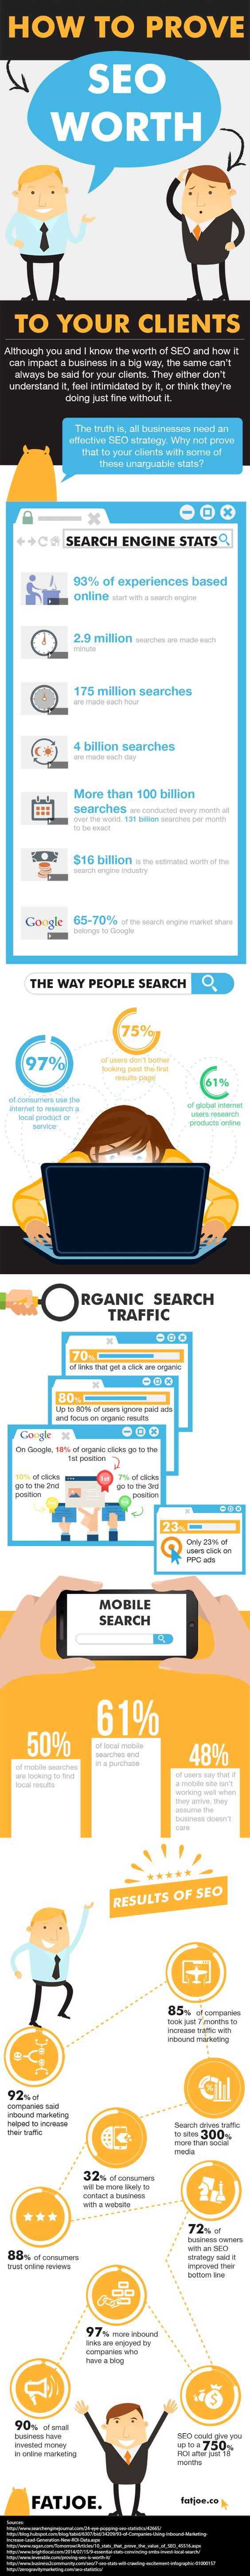 How to Prove SEO Worth to Your Client